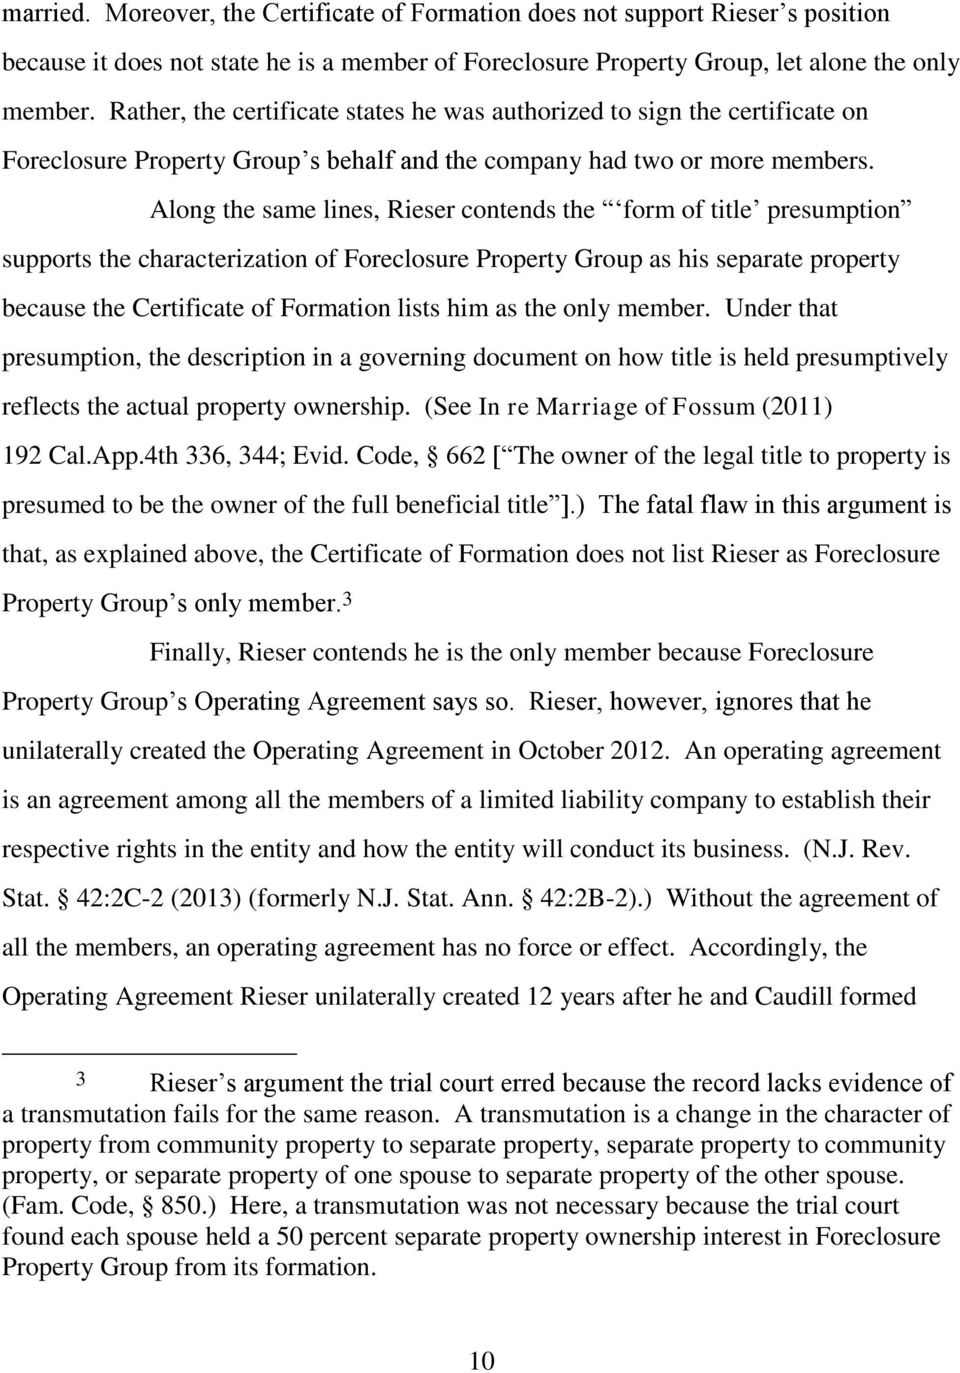 Along the same lines, Rieser contends the form of title presumption supports the characterization of Foreclosure Property Group as his separate property because the Certificate of Formation lists him